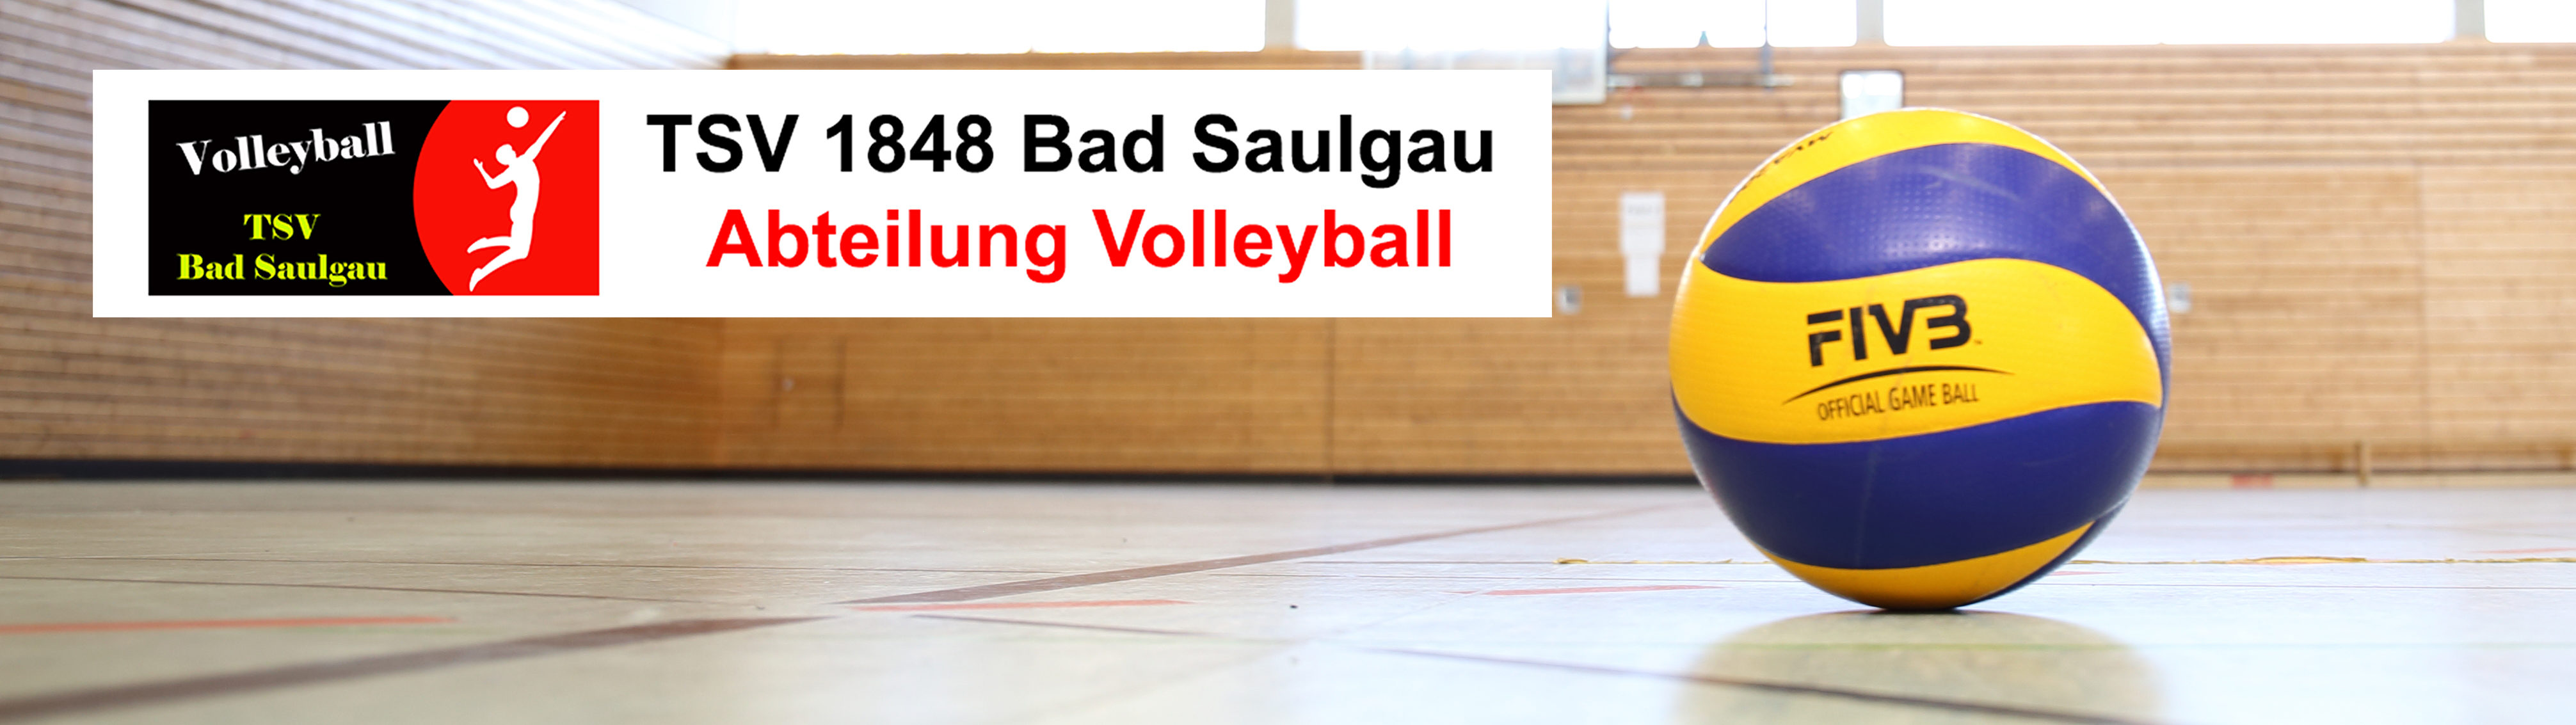 volleyball-badsaulgau.de